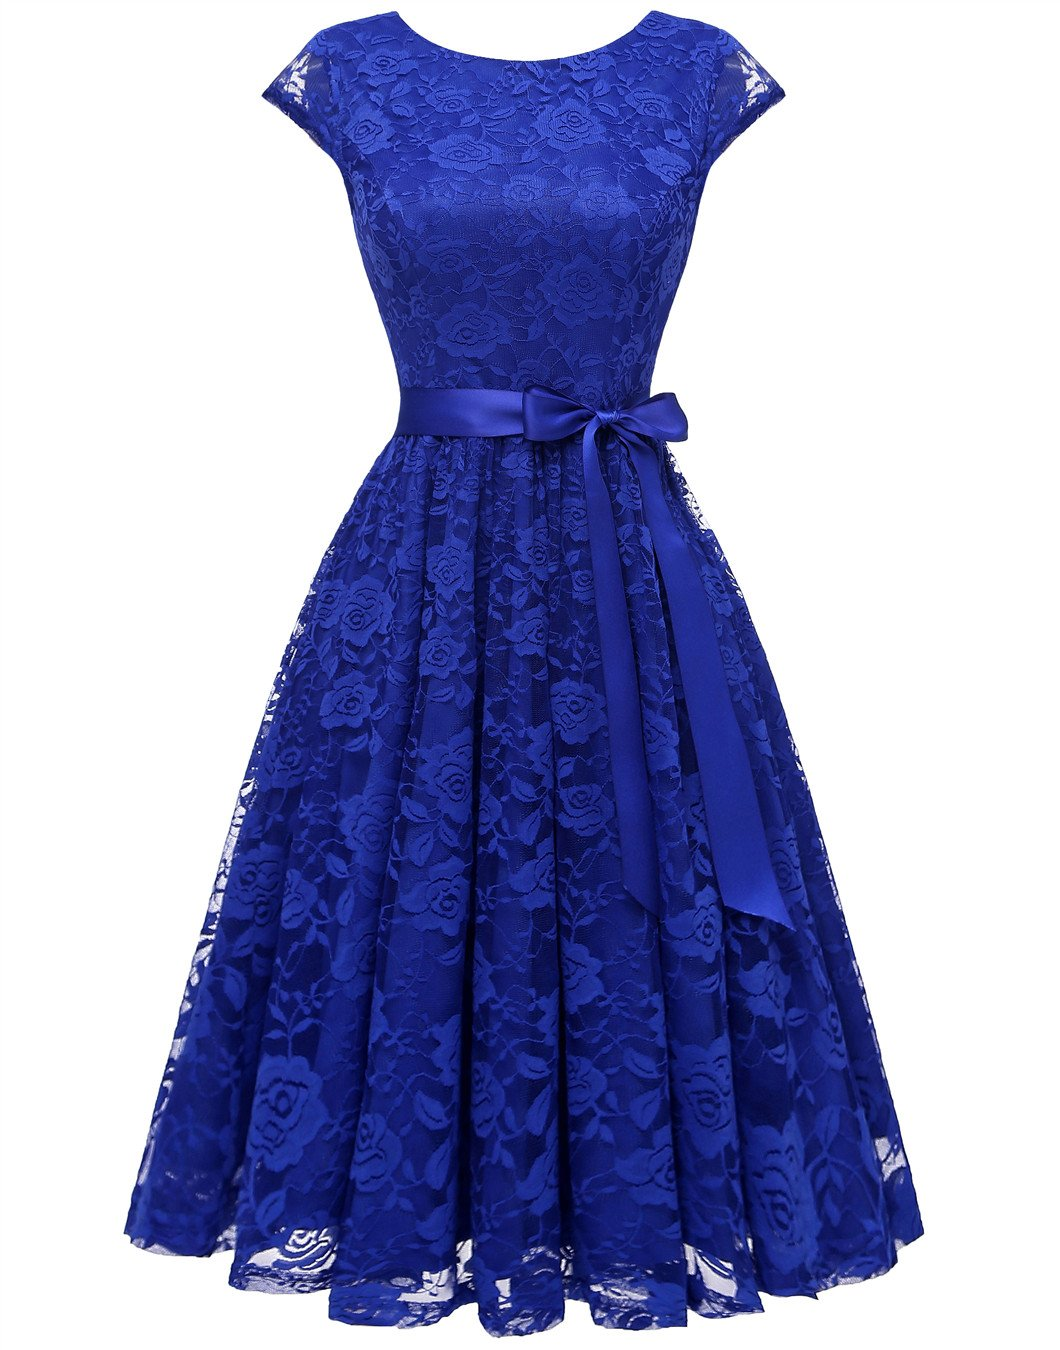 Available at Amazon: BeryLove Women's Floral Lace Short Bridesmaid Dress Cap-Sleeve Wedding Formal Party Dress